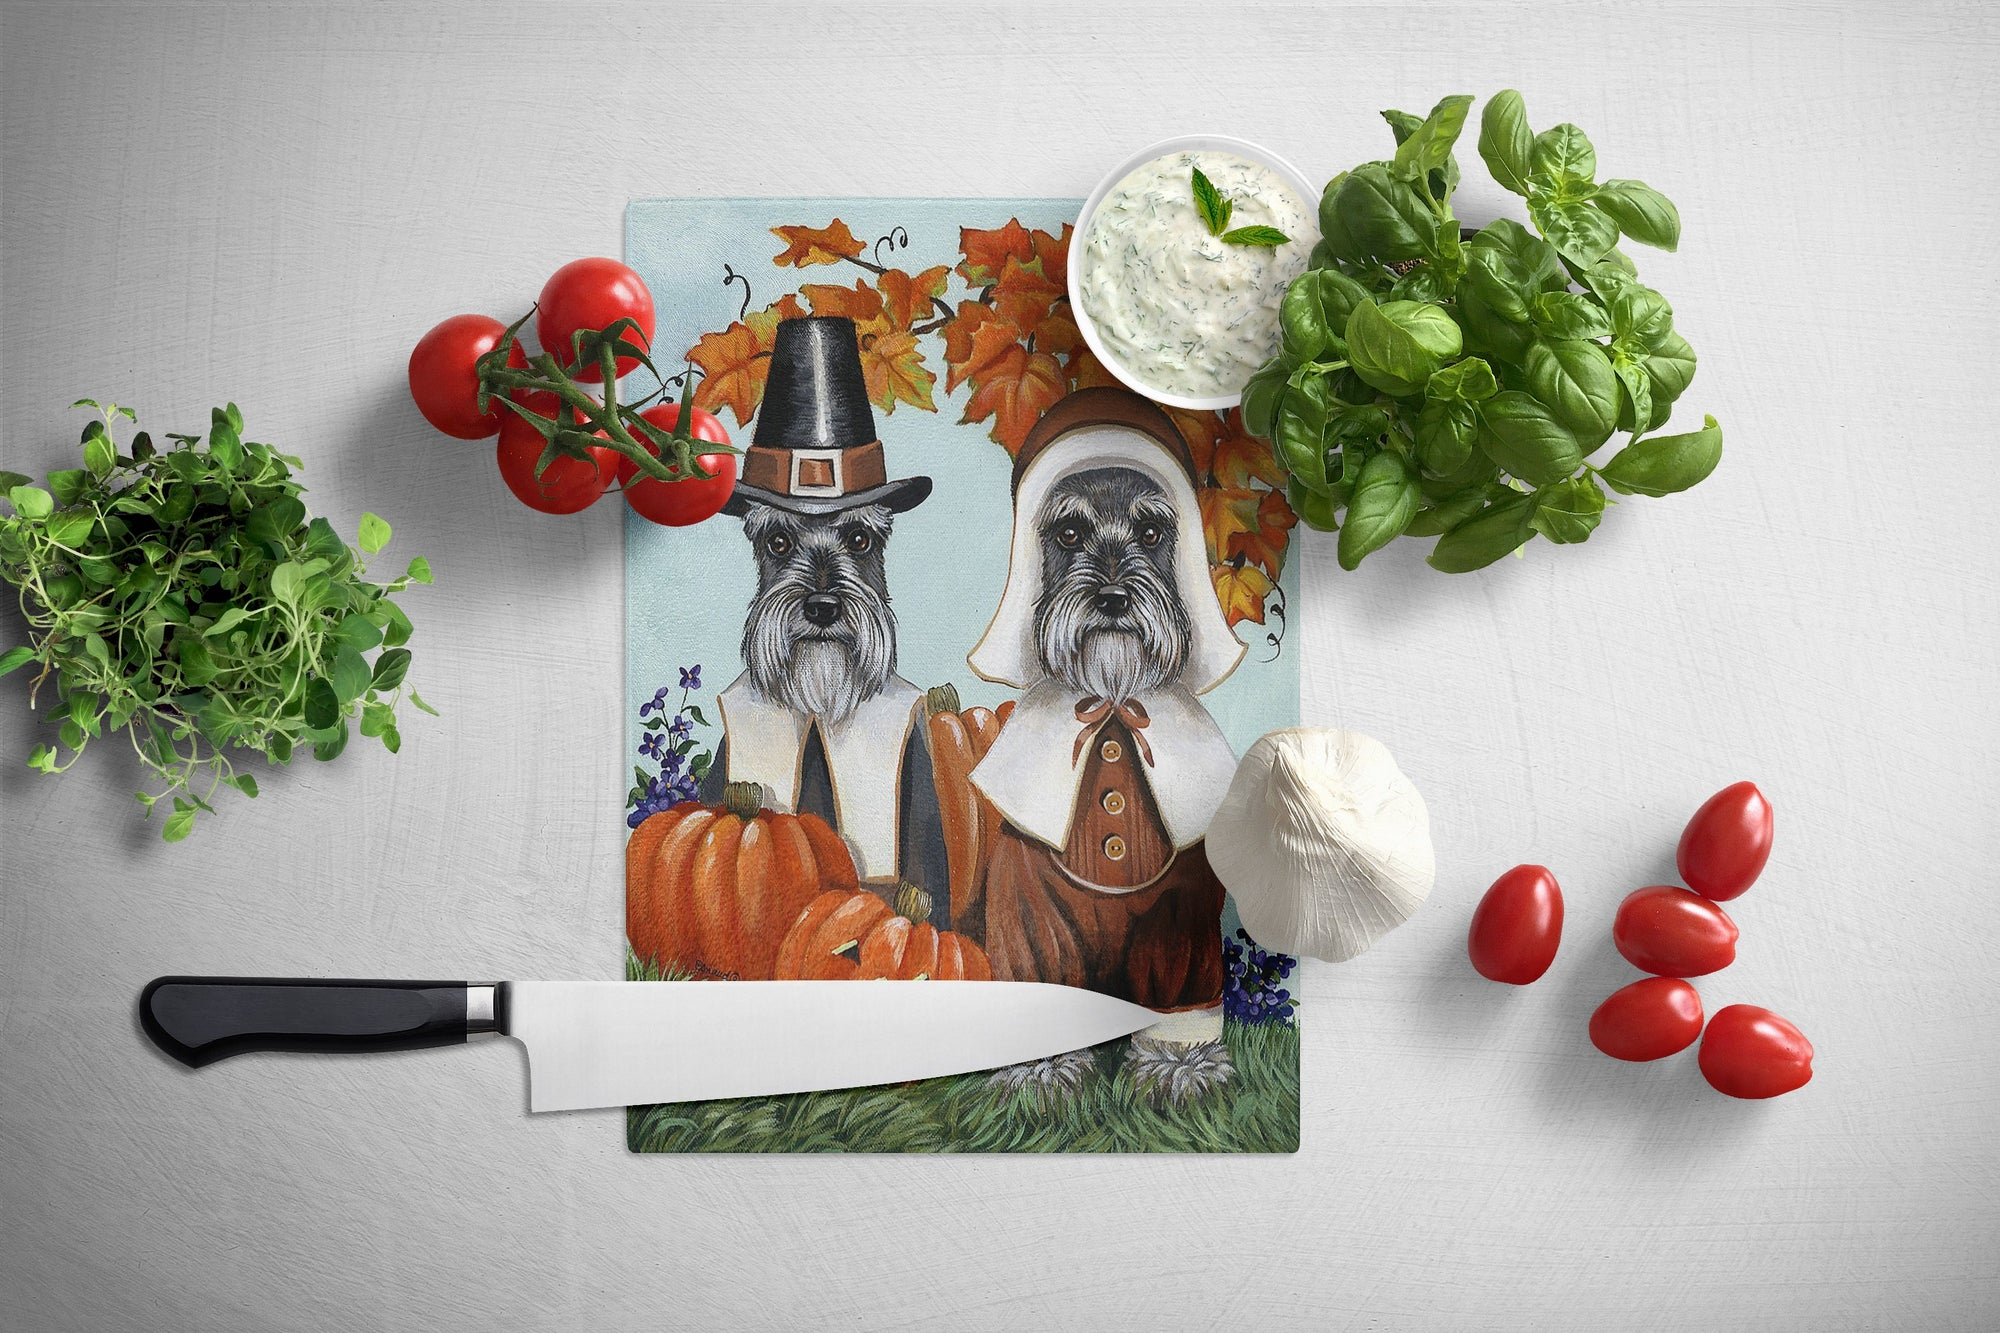 Schnauzer Thanksgiving Pilgrims Glass Cutting Board Large PPP3167LCB by Caroline's Treasures